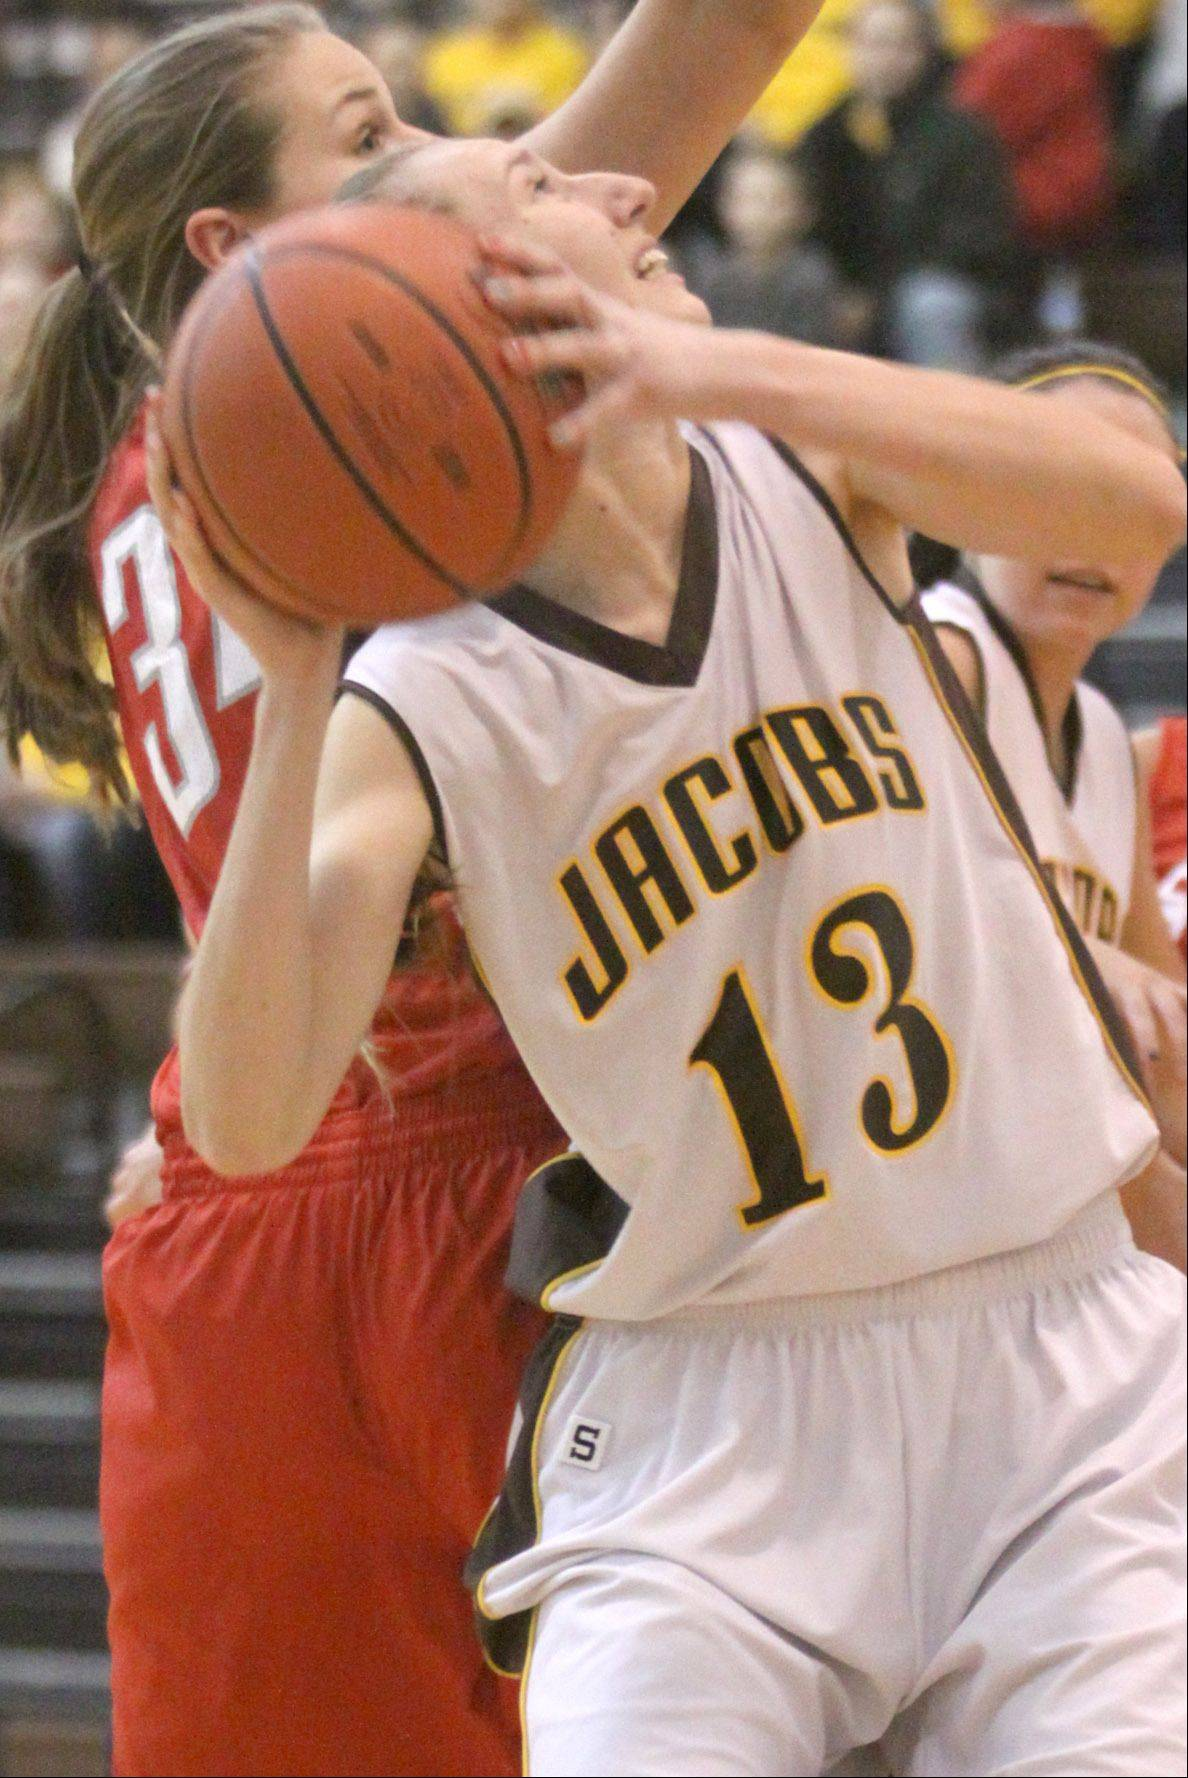 Jacobs' Victoria Tamburrino takes a shot against South Elgin during a varsity basketball game at Algonquin on Tuesday night.